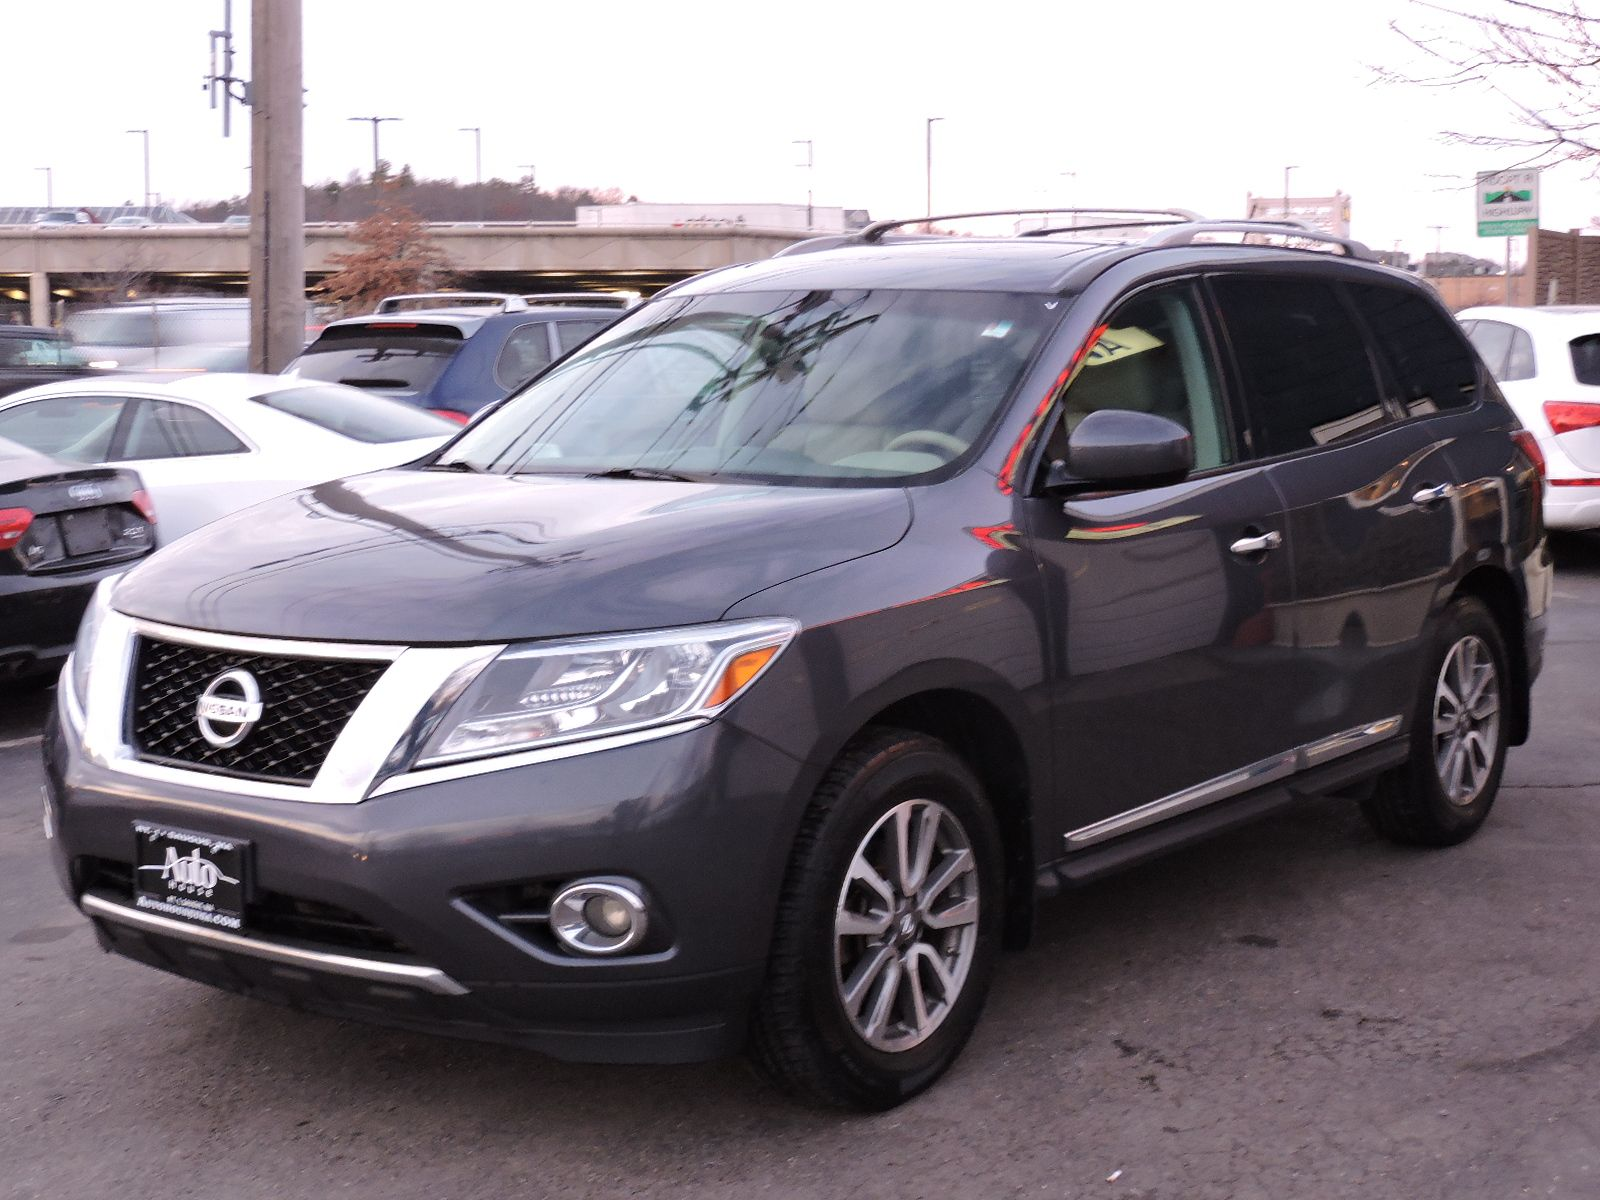 2013 Nissan Pathfinder SL - All Wheel Drive - DVD Entertainment